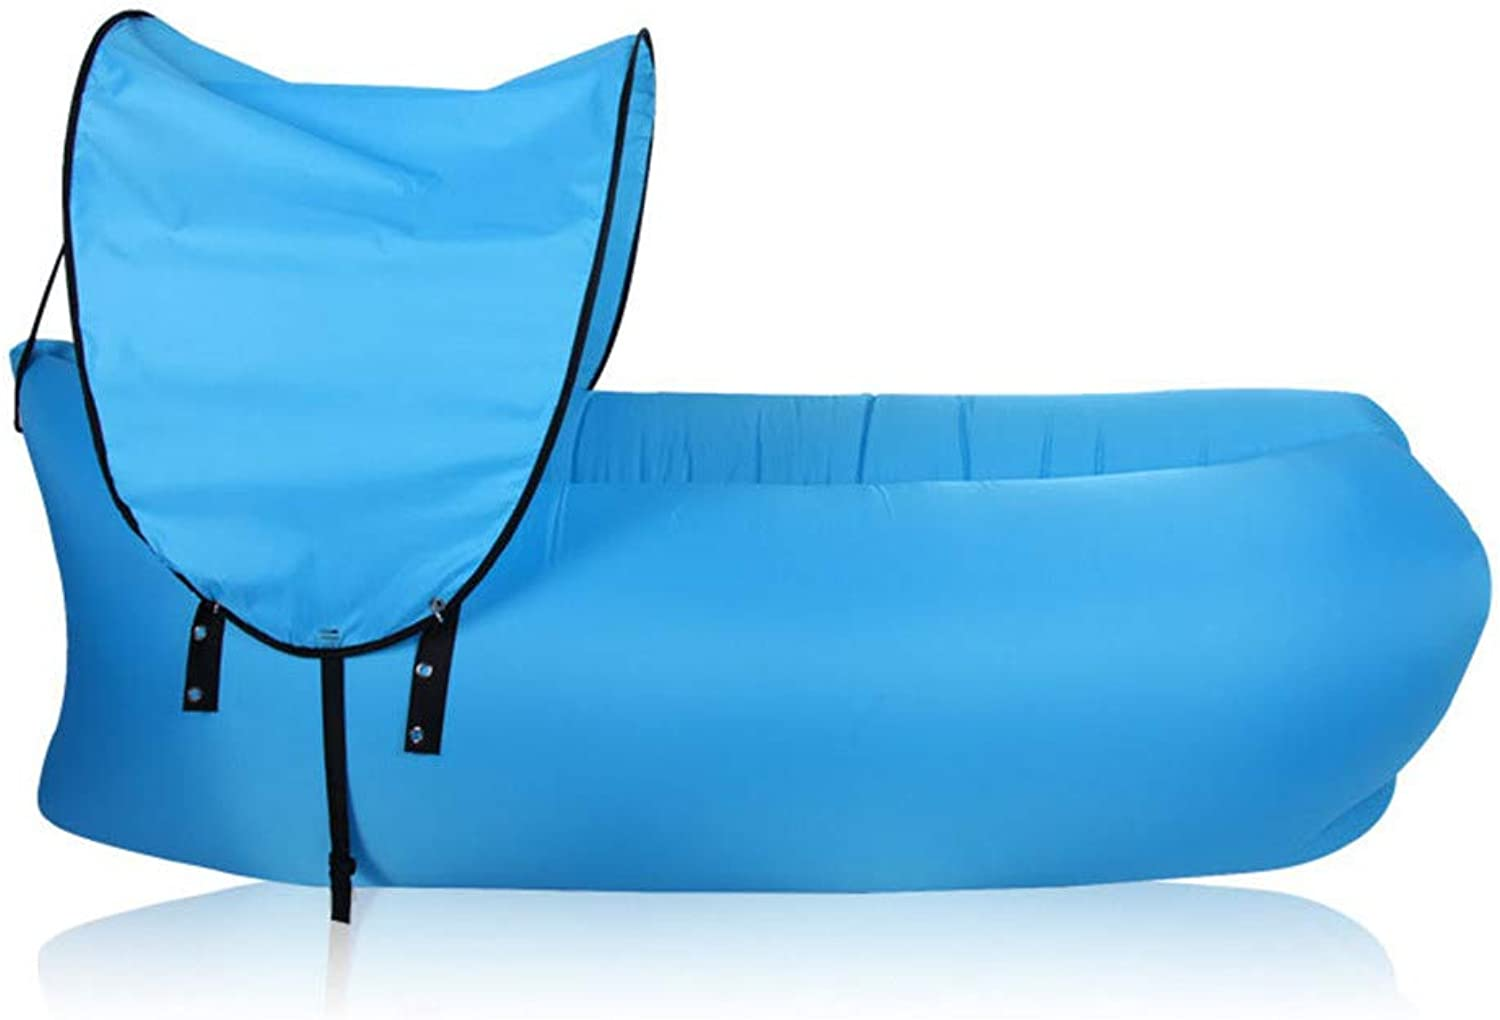 Outdoor Travel Loungers Can Be Foldable and Foldable,for Outdoor Sport and so on